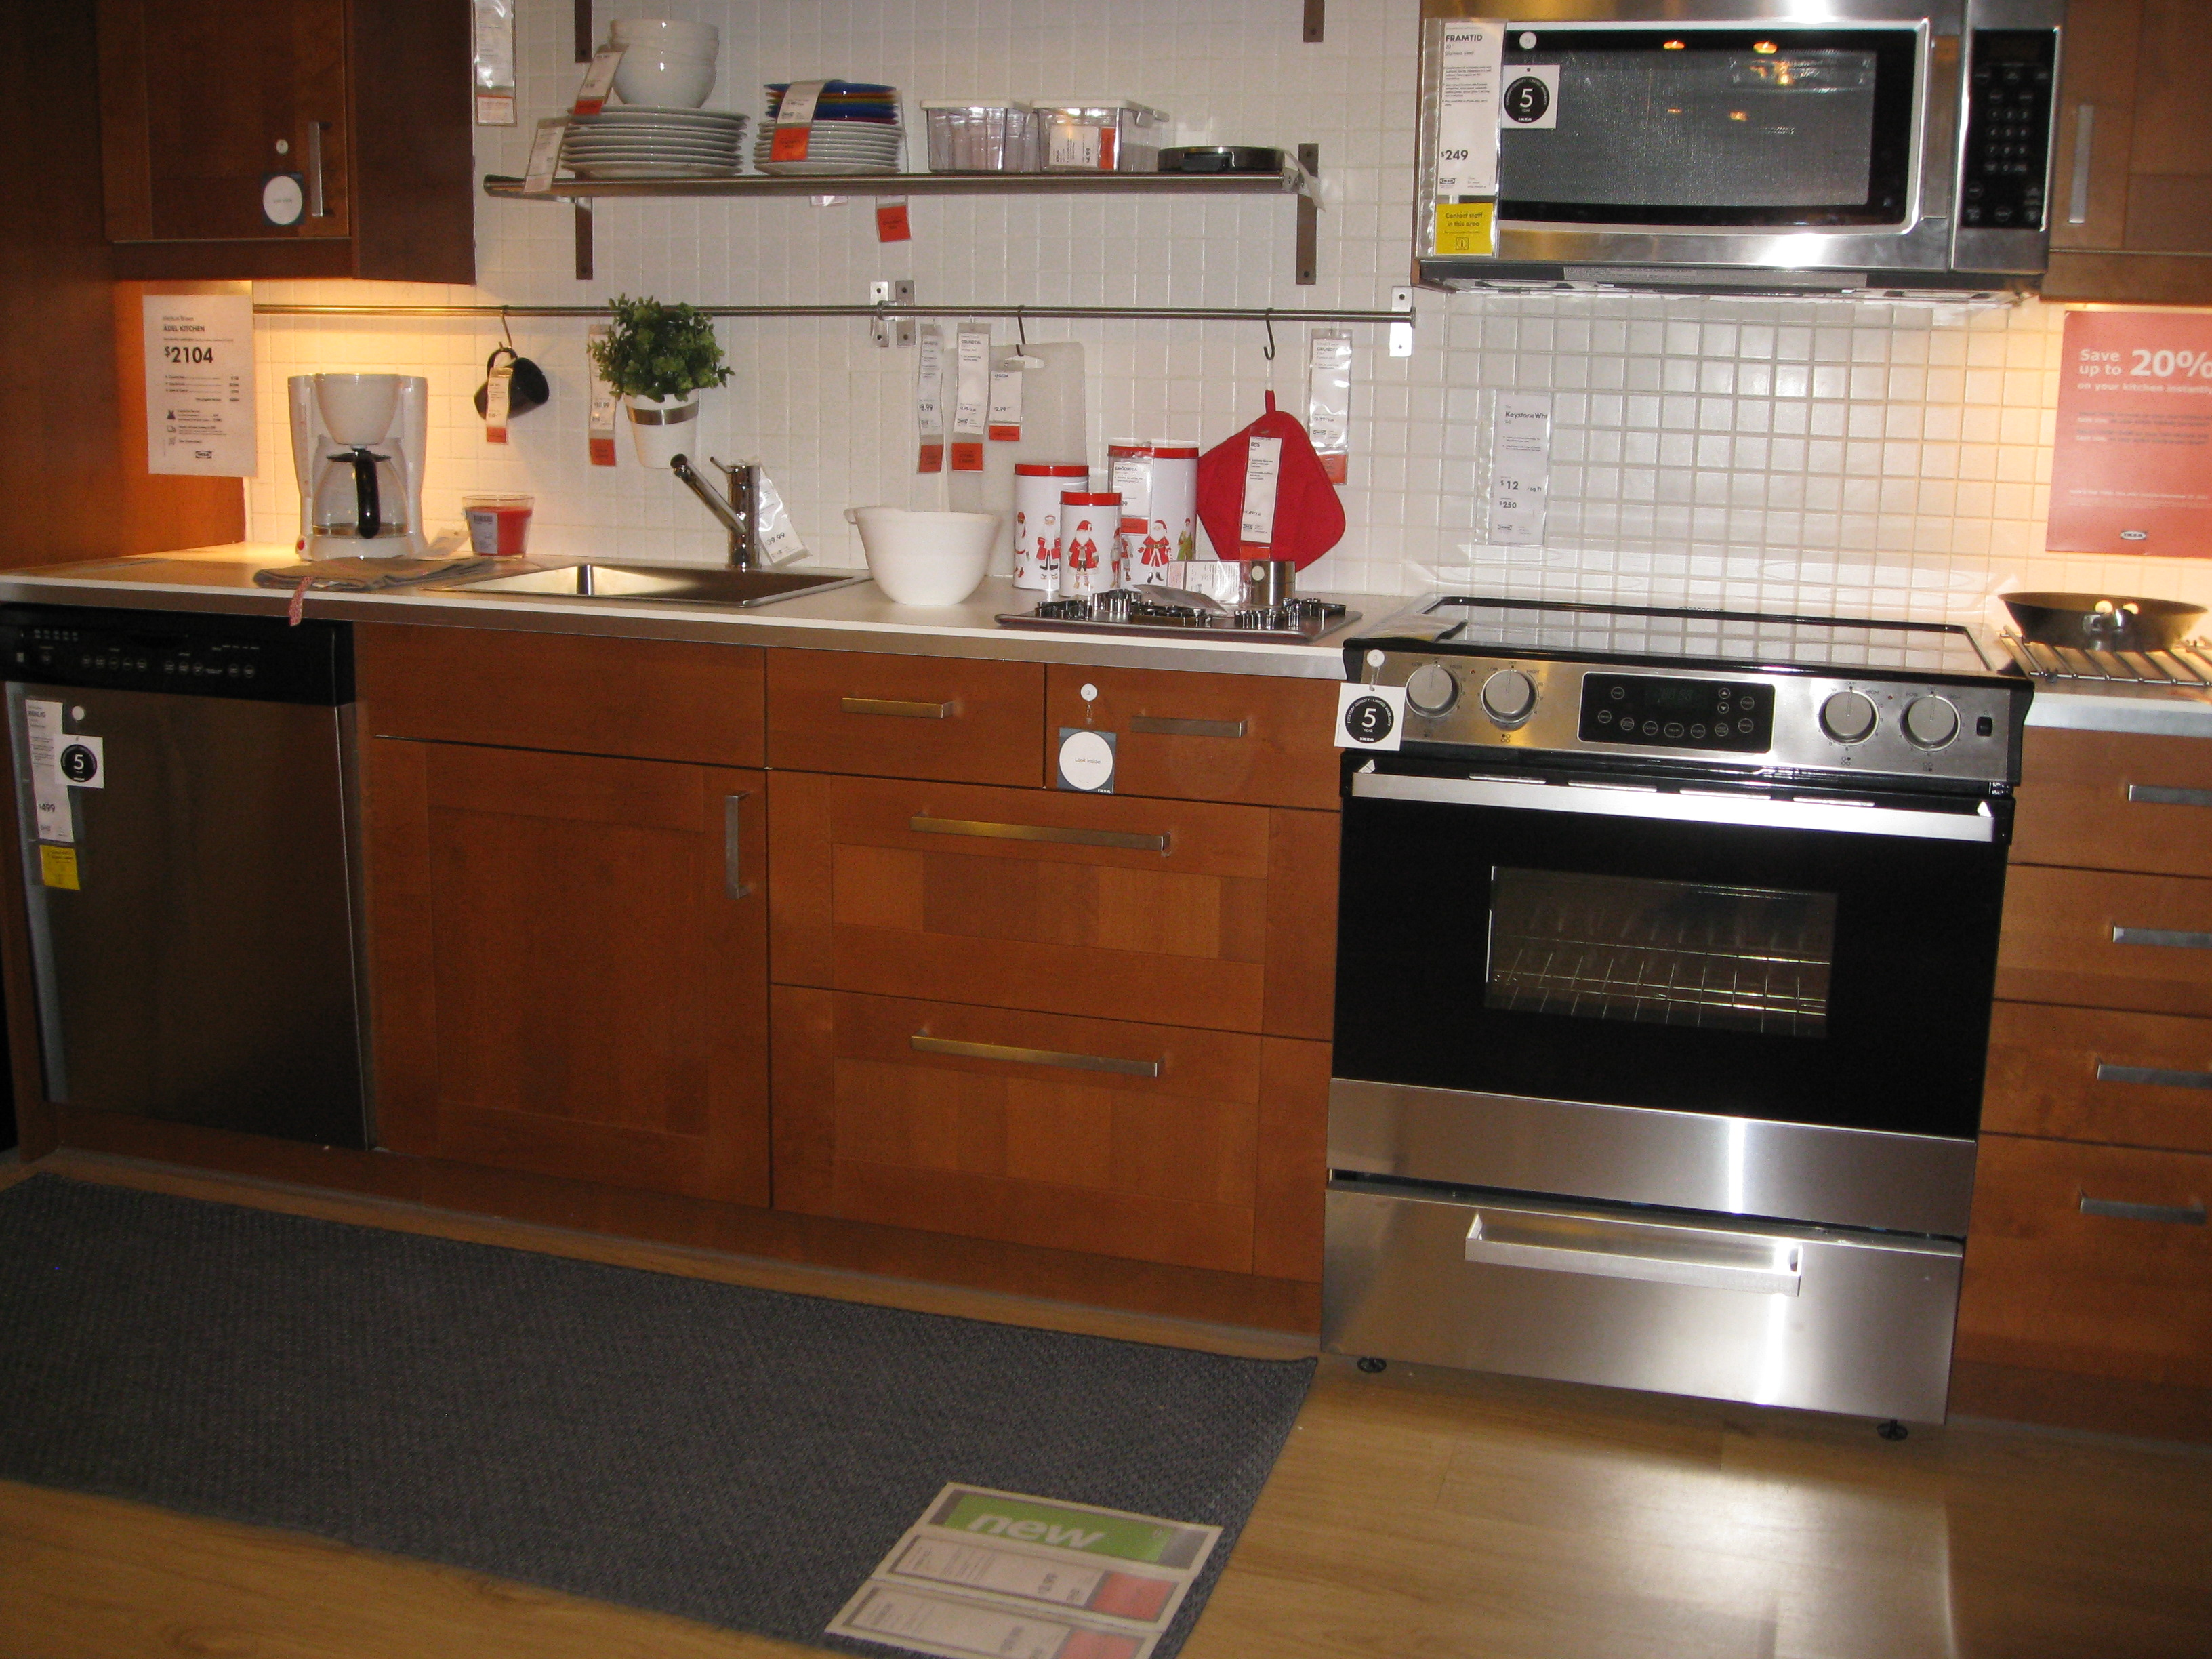 Calmly A Hotel What N Is A Kitchenette Building What Is A Kitchen According To Tdlr What Is A Kitchen According To Tdlr Abadi Access What Is A Kitchenette houzz-03 What Is A Kitchenette